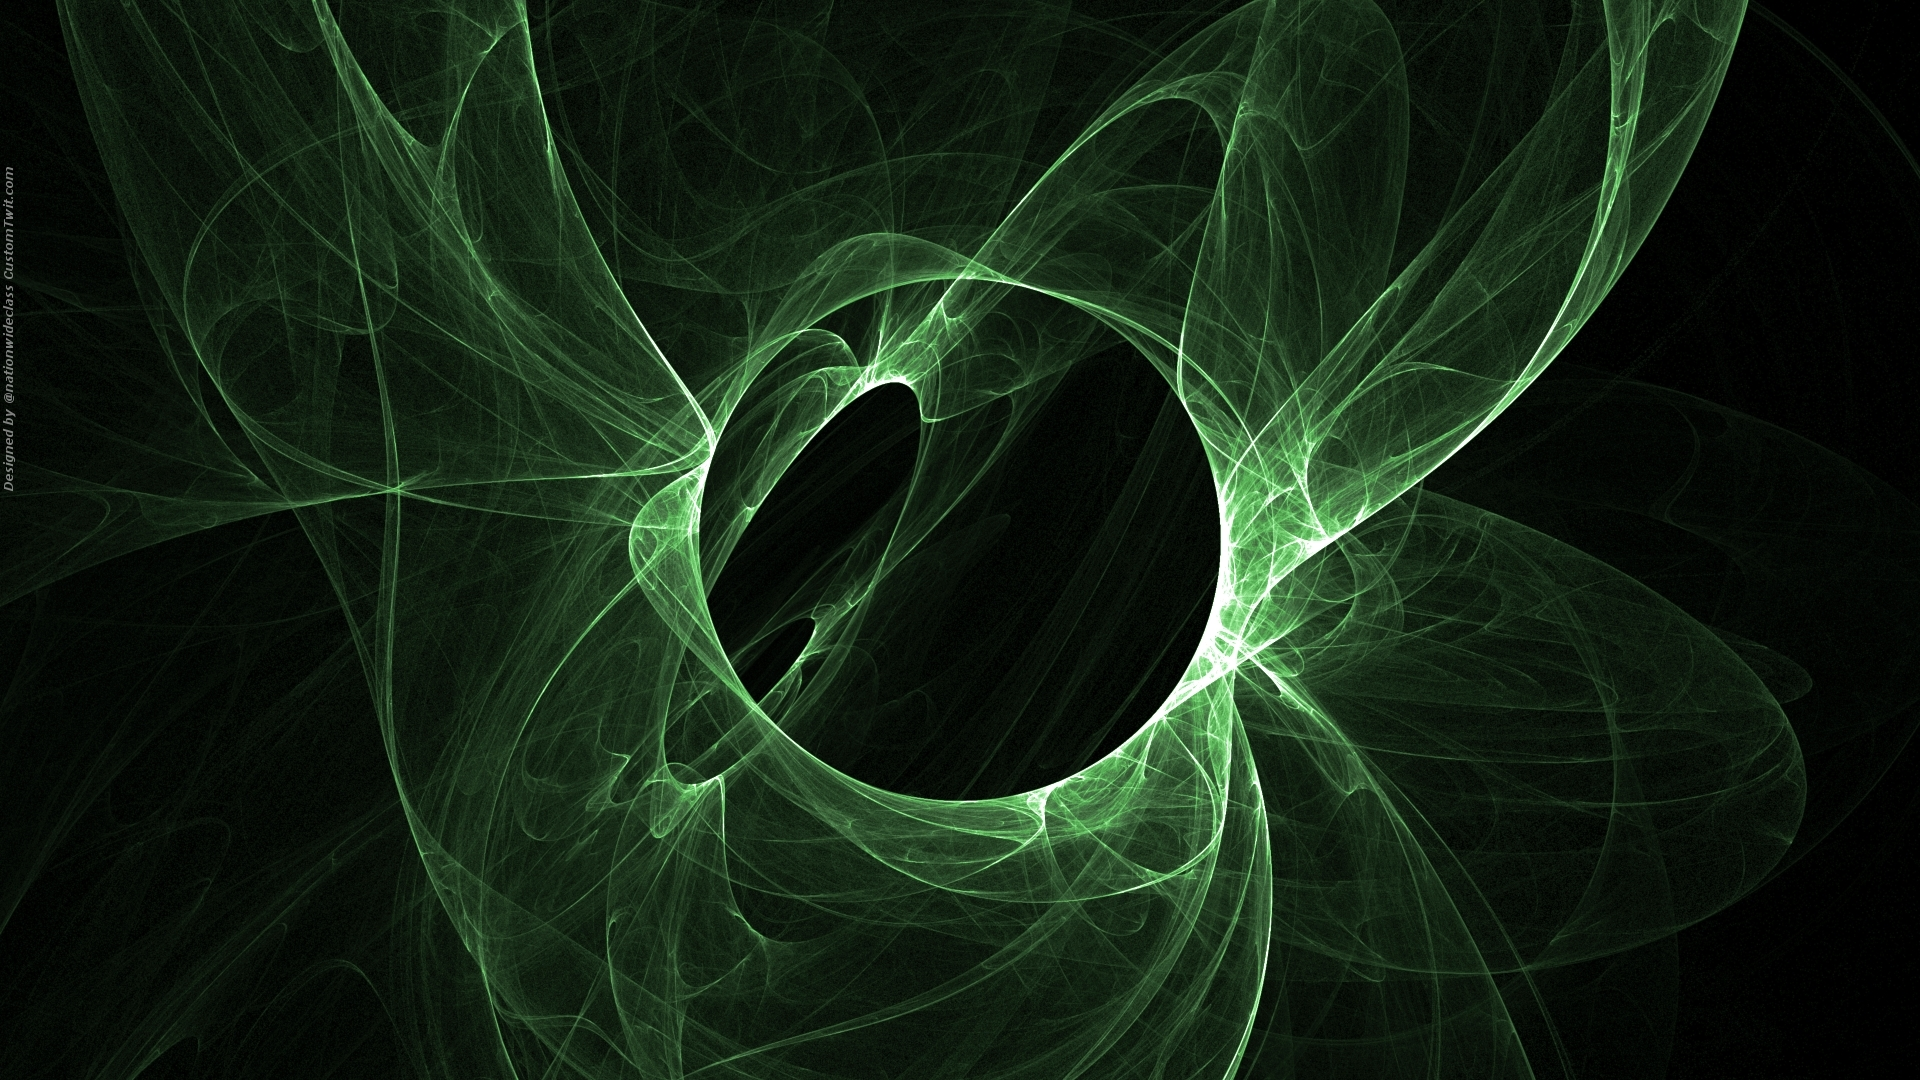 Background image jpg - Abstract Background 22